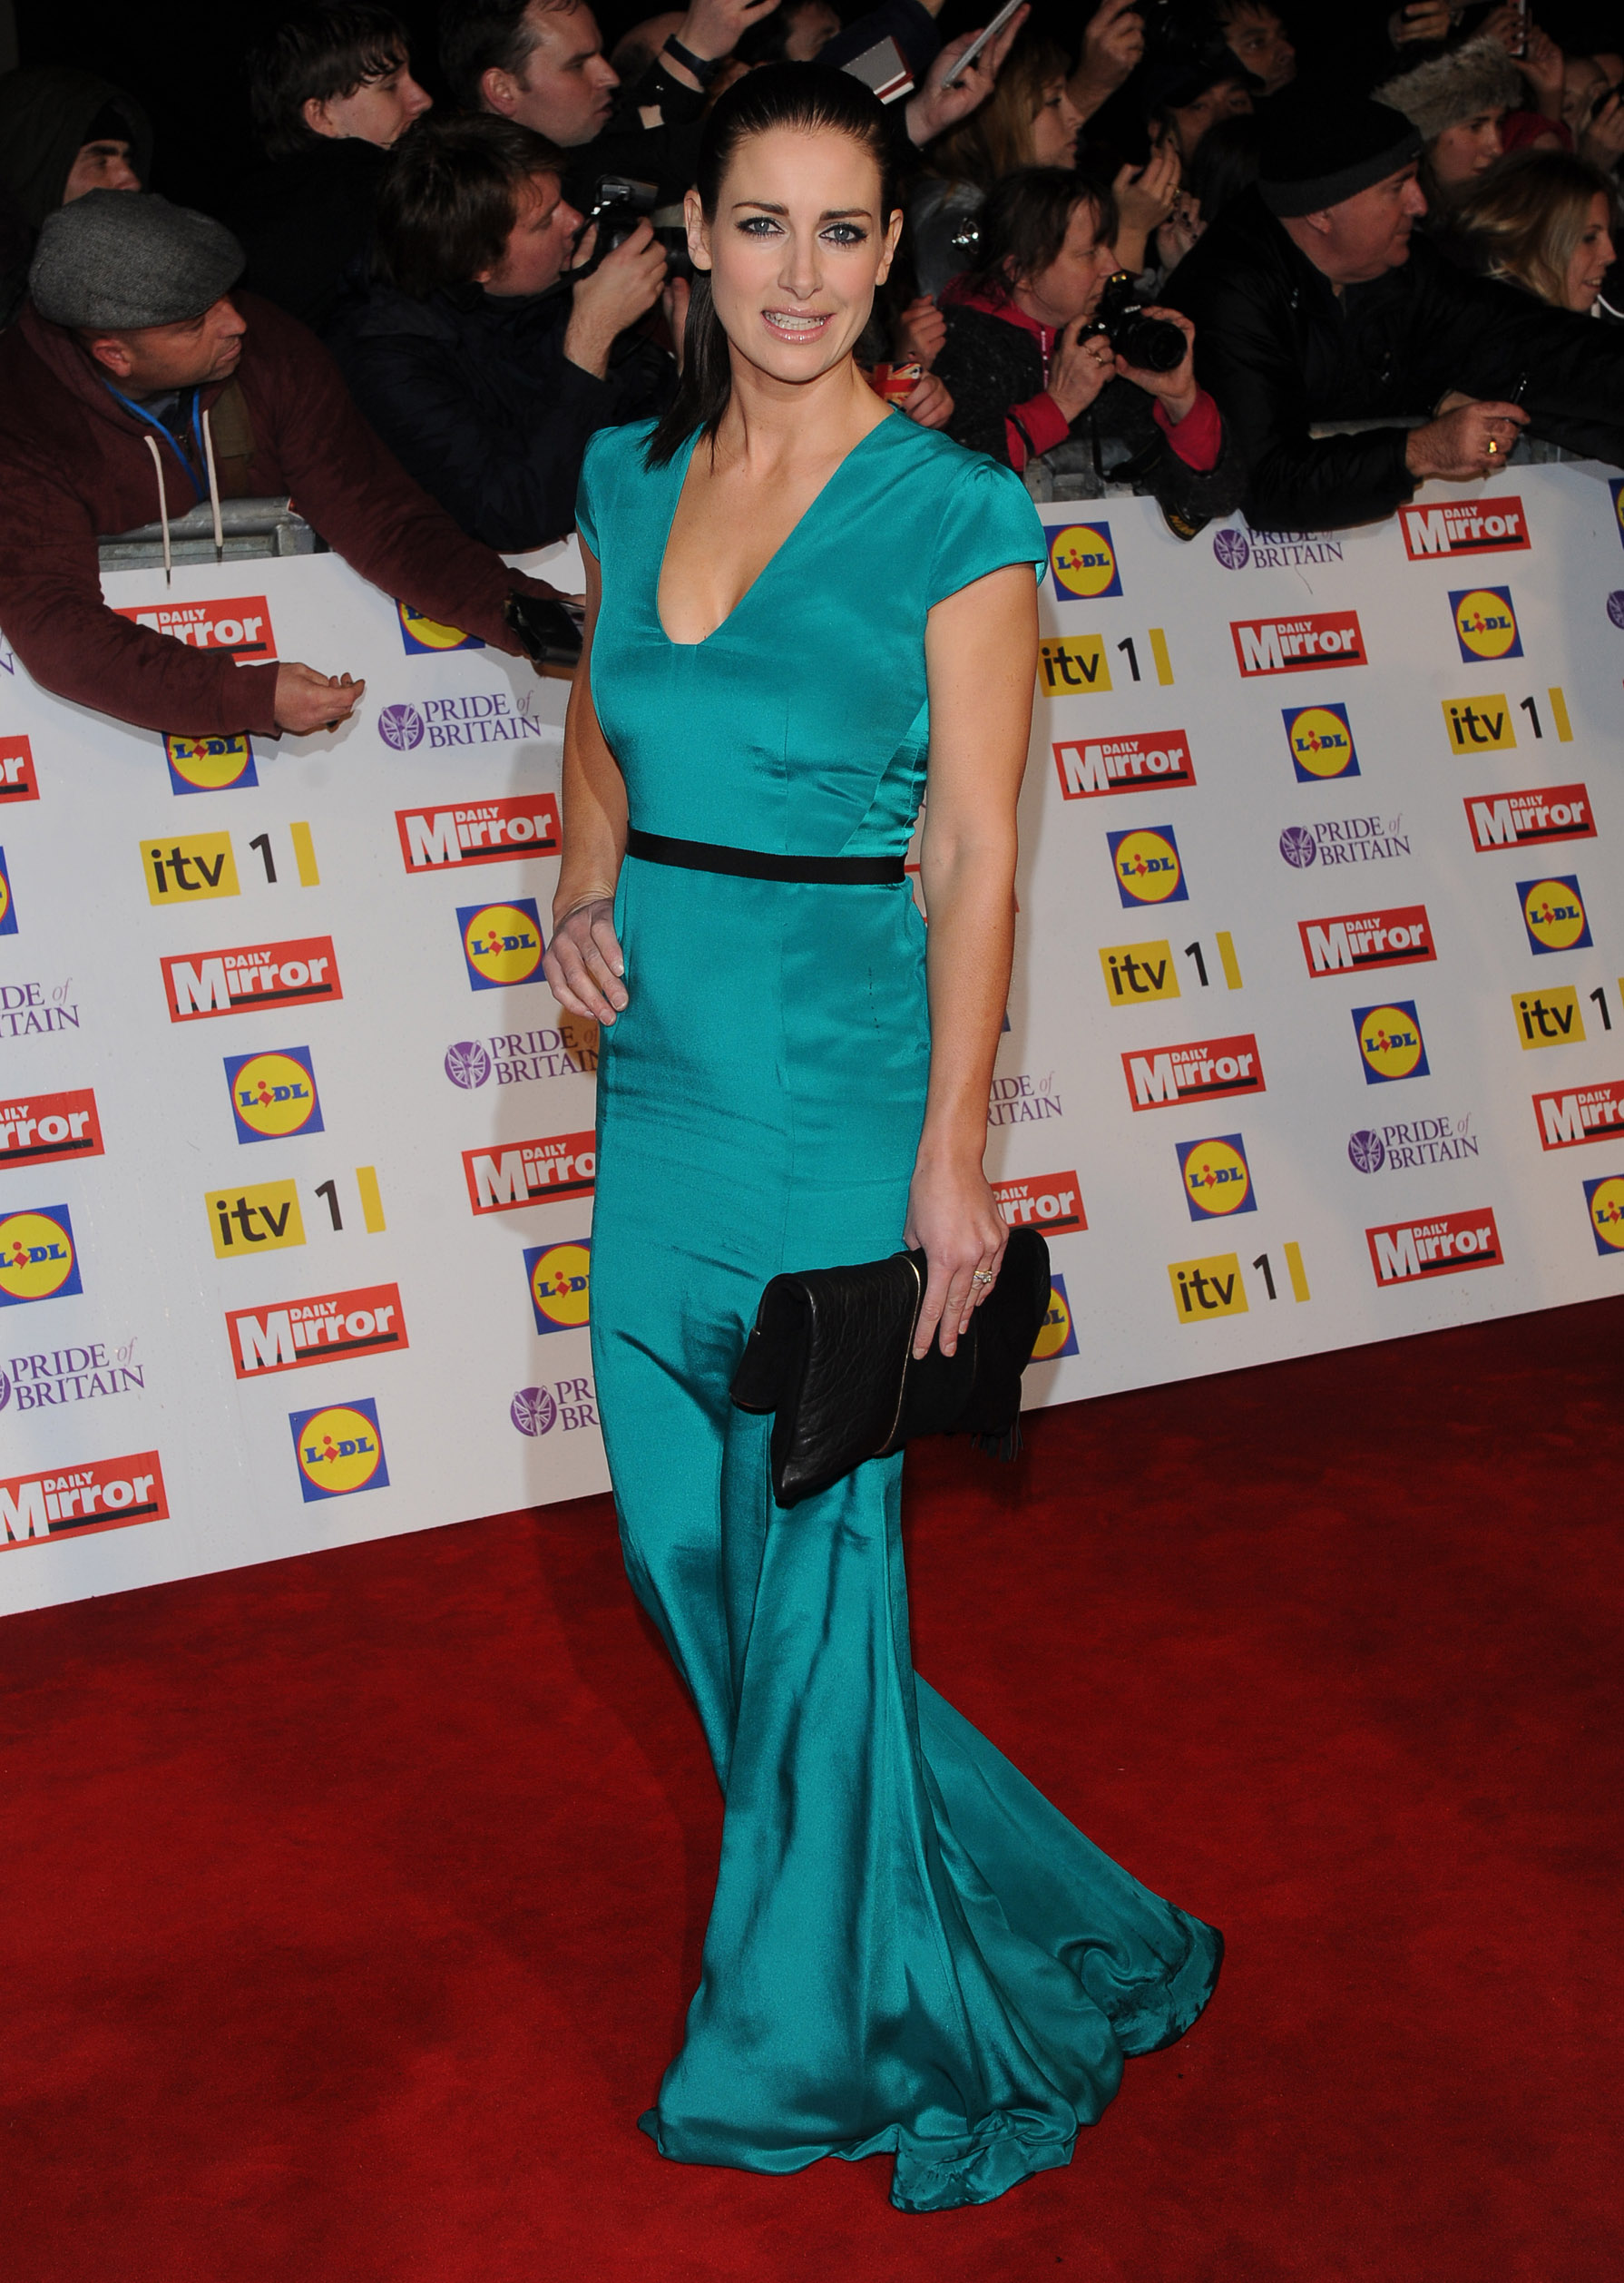 Kirsty Gallacher 2012 : Kirsty Gallacher cleavage-05